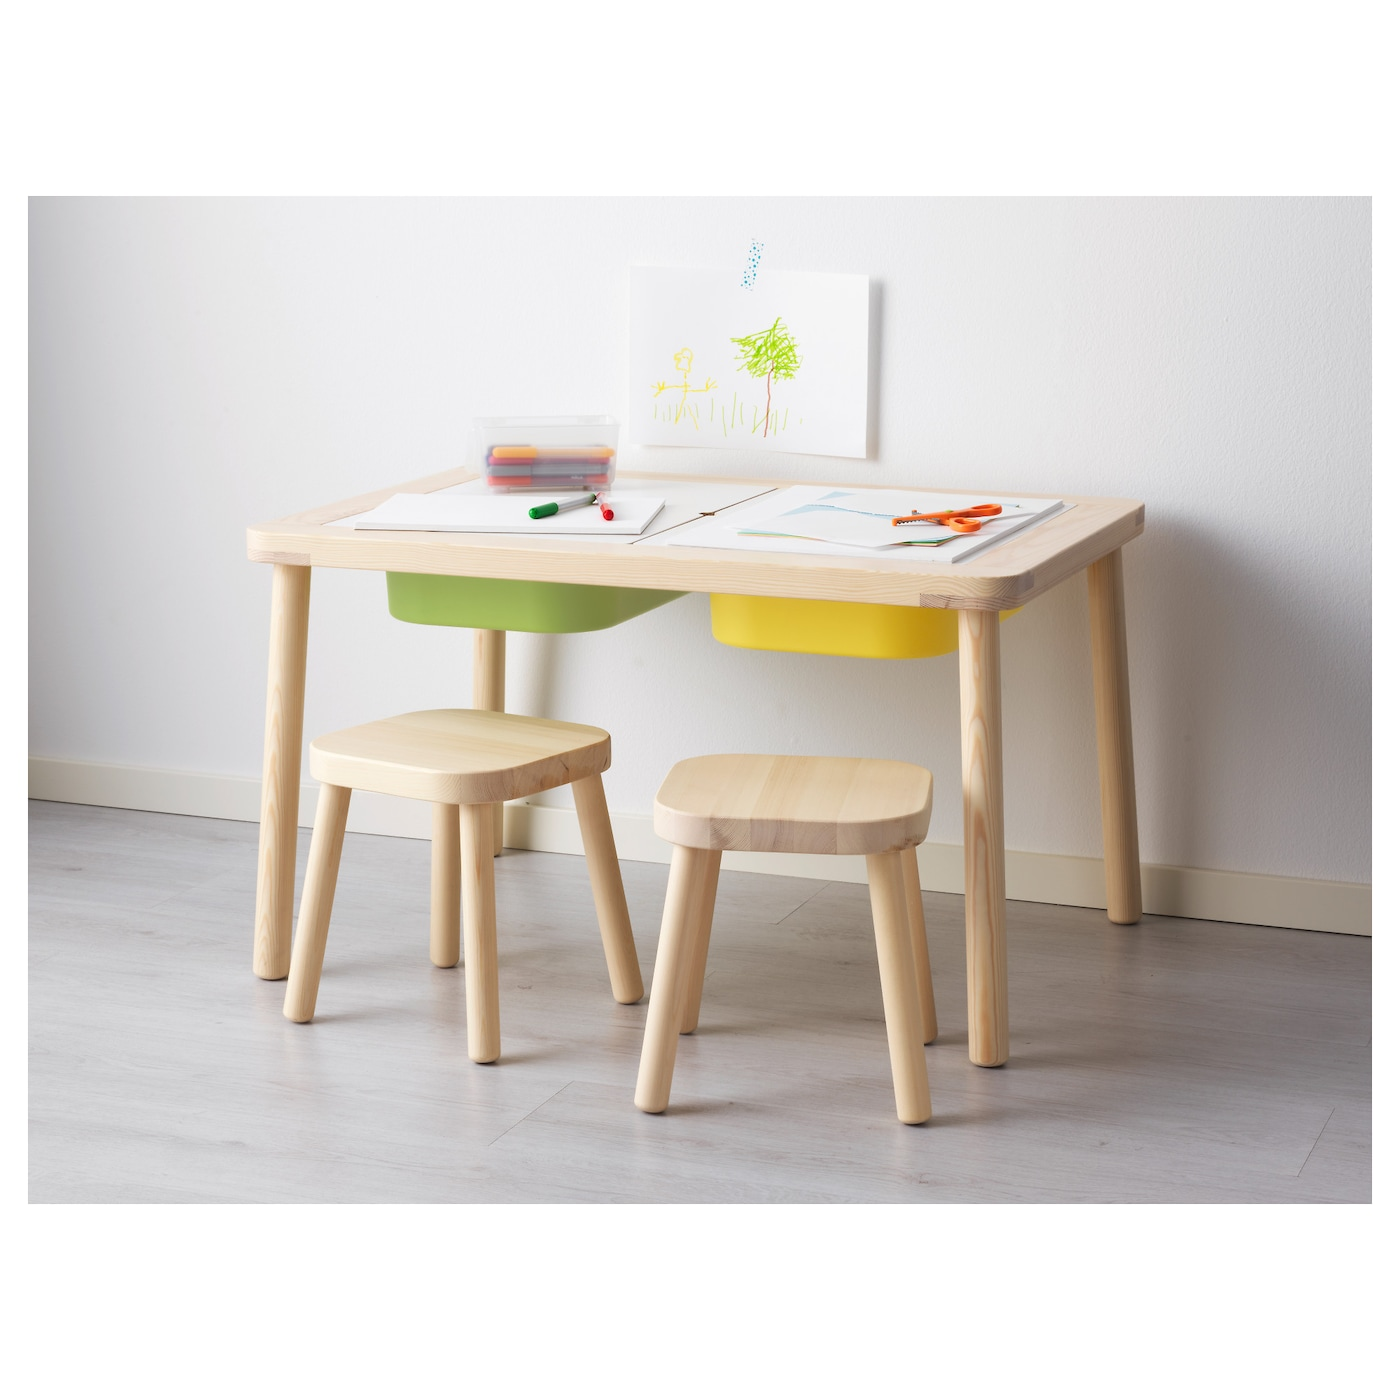 children s table with storage flisat children s table 83 x 58 cm ikea 14813